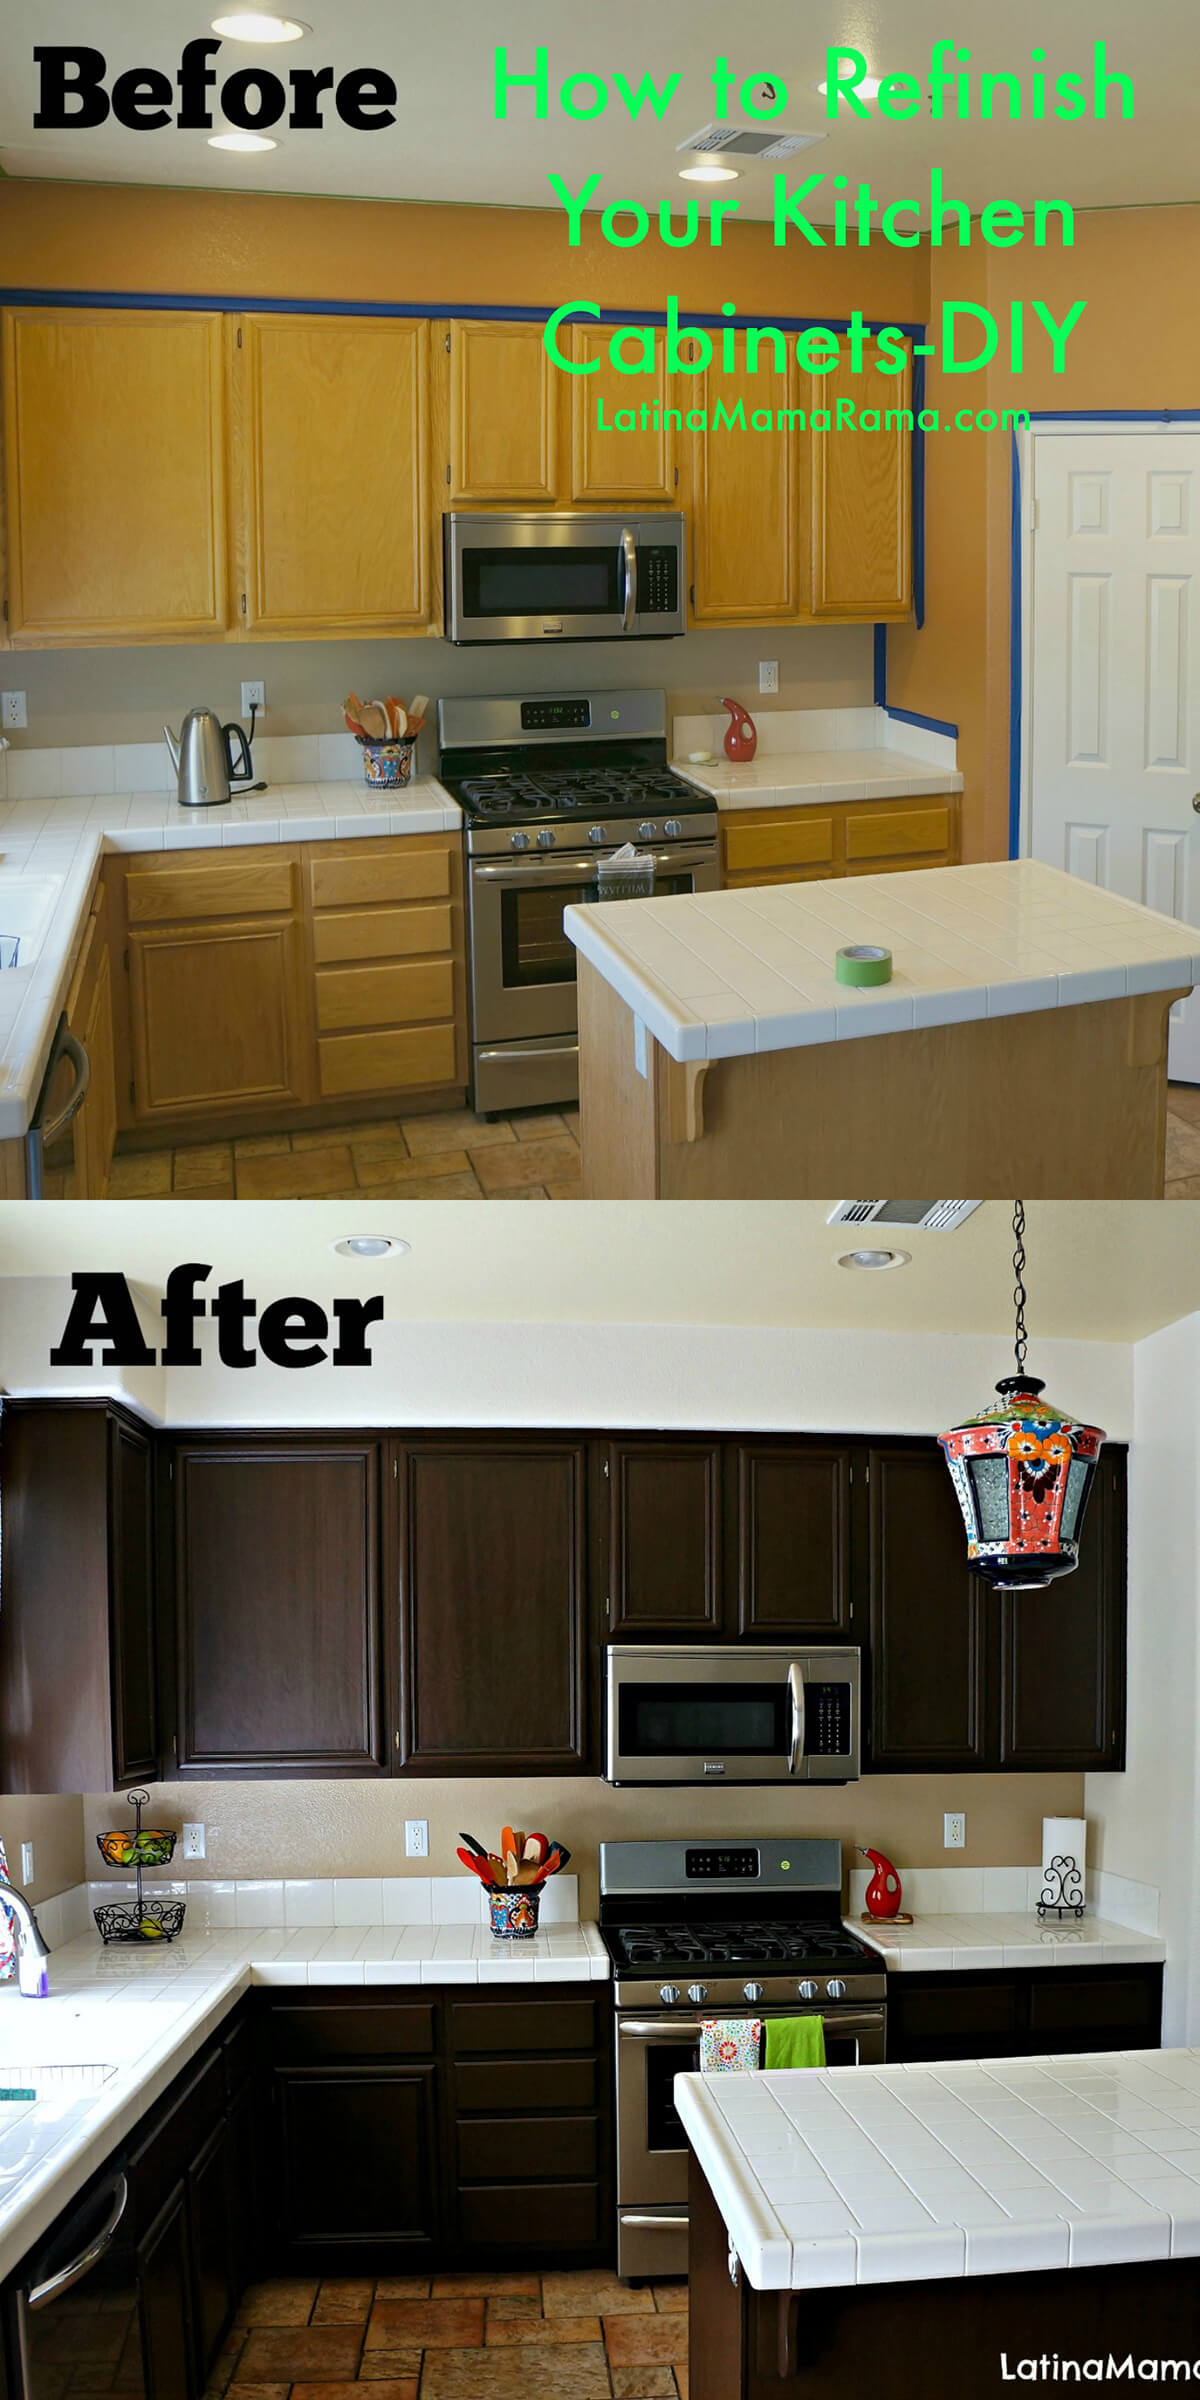 A Dark Finish on Wooden Cabinets